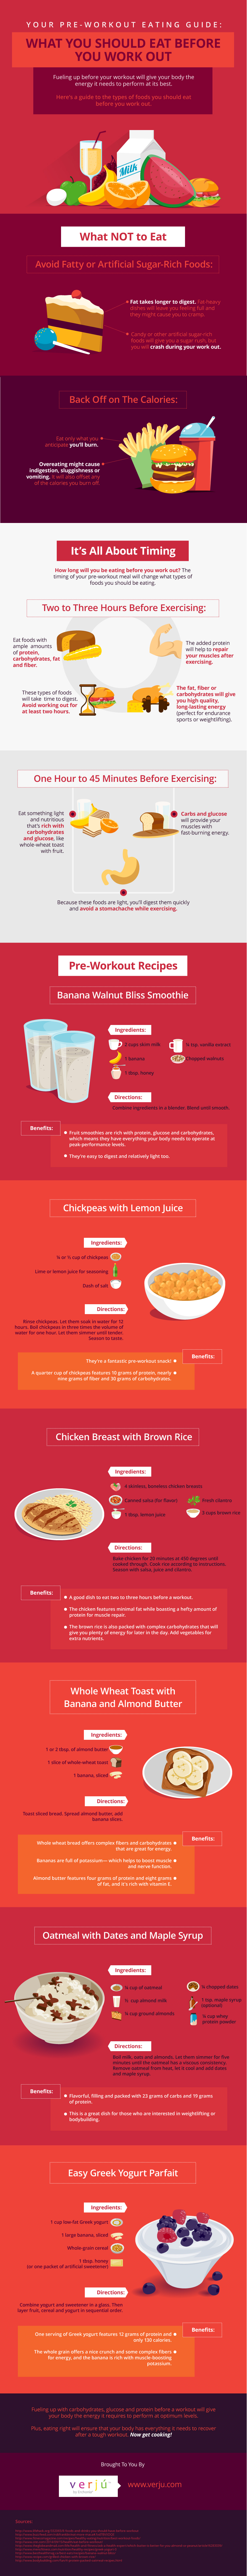 pre-workout eating guide infographic